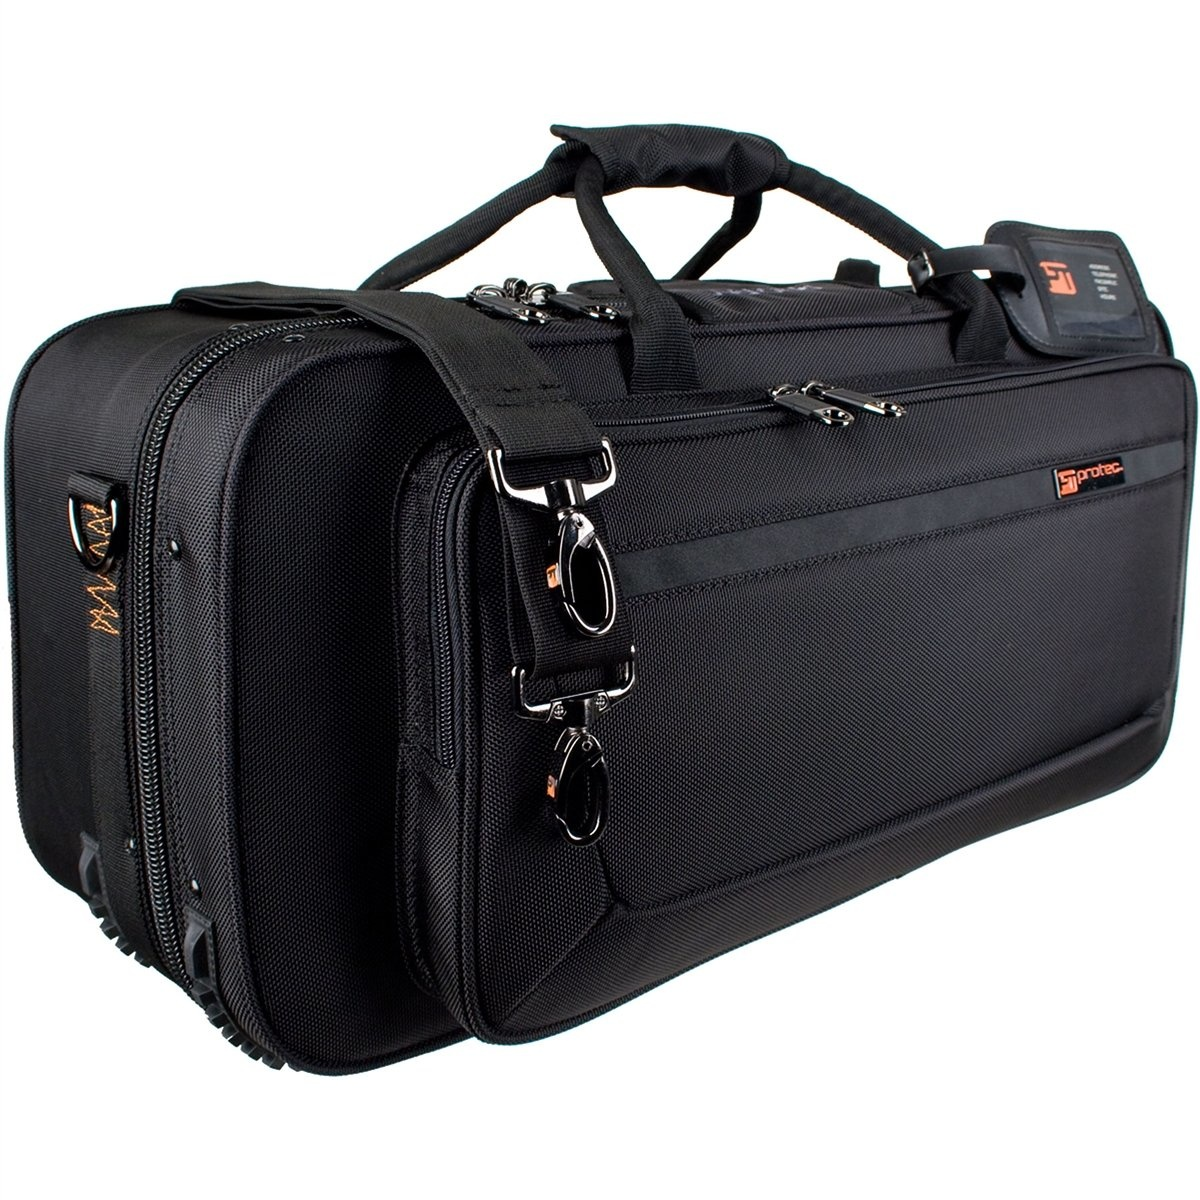 Protec Protec Pro Pac Trumpet Case with Mute Section